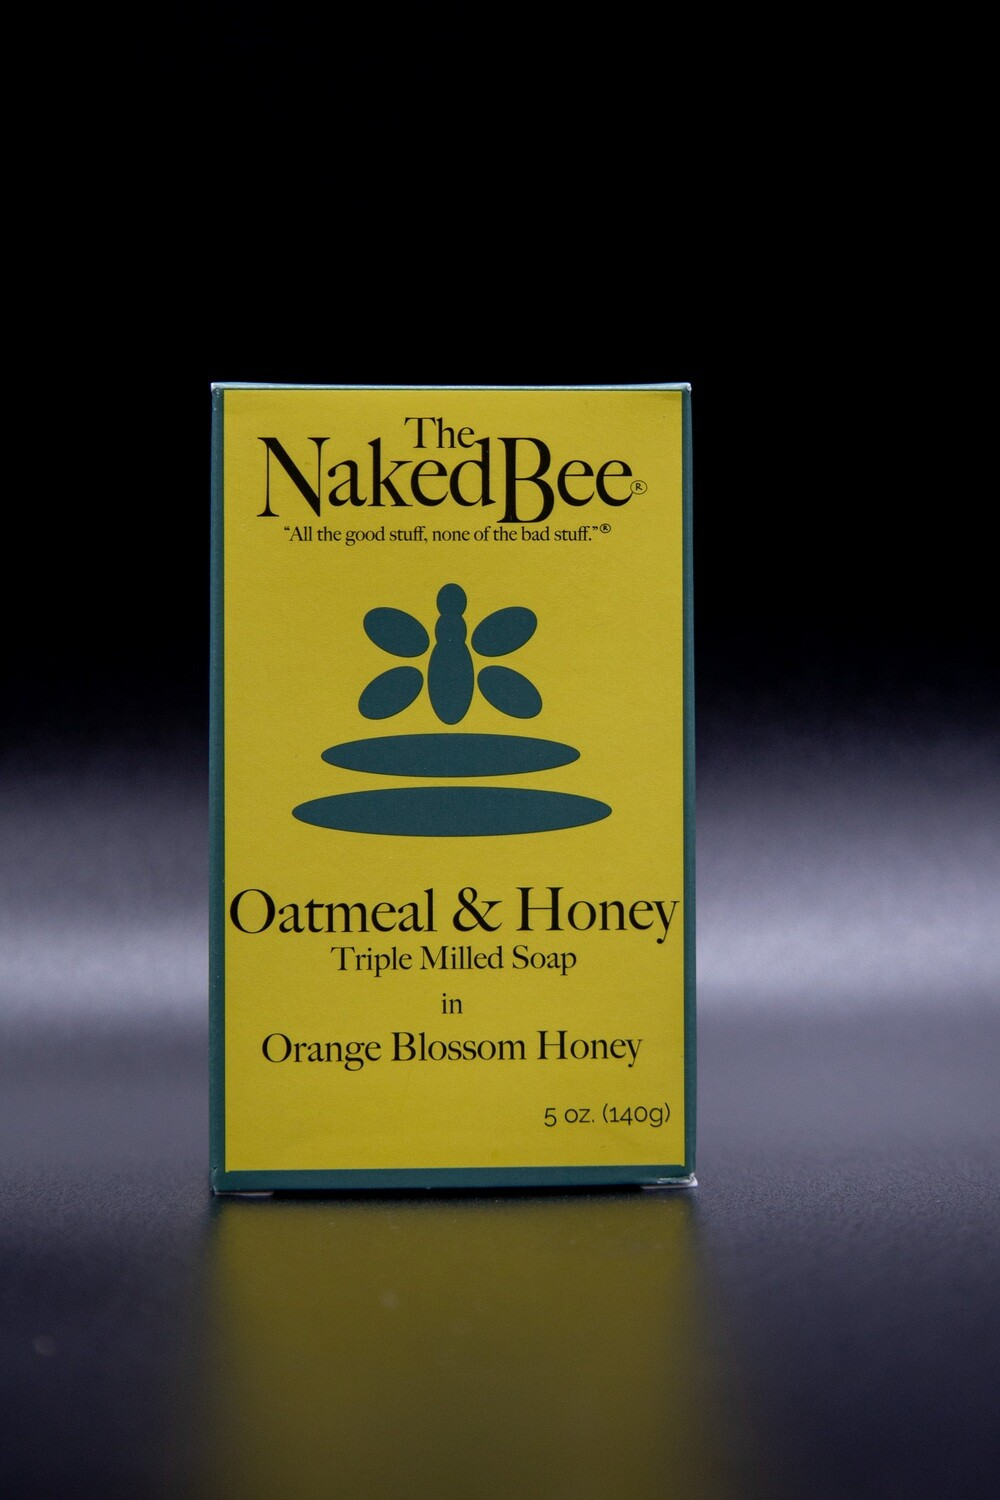 Oatmeal and Honey